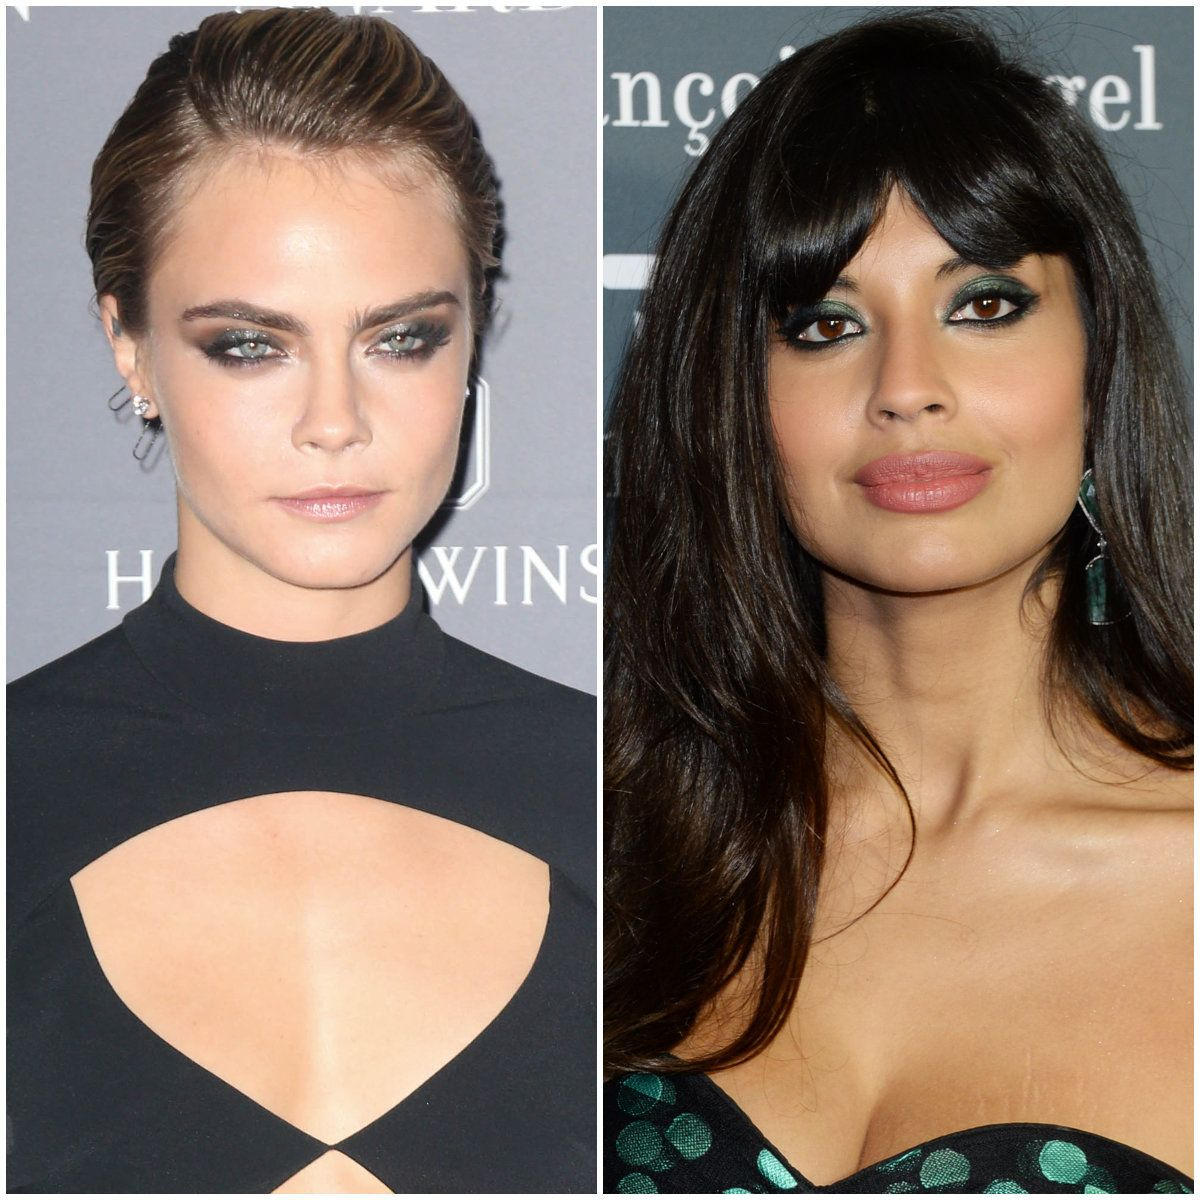 IN THE PAST: Cara Delevingne Challenges Jameela Jamil Over Karl Lagerfeld 'Fat-Phobic Misogynist'